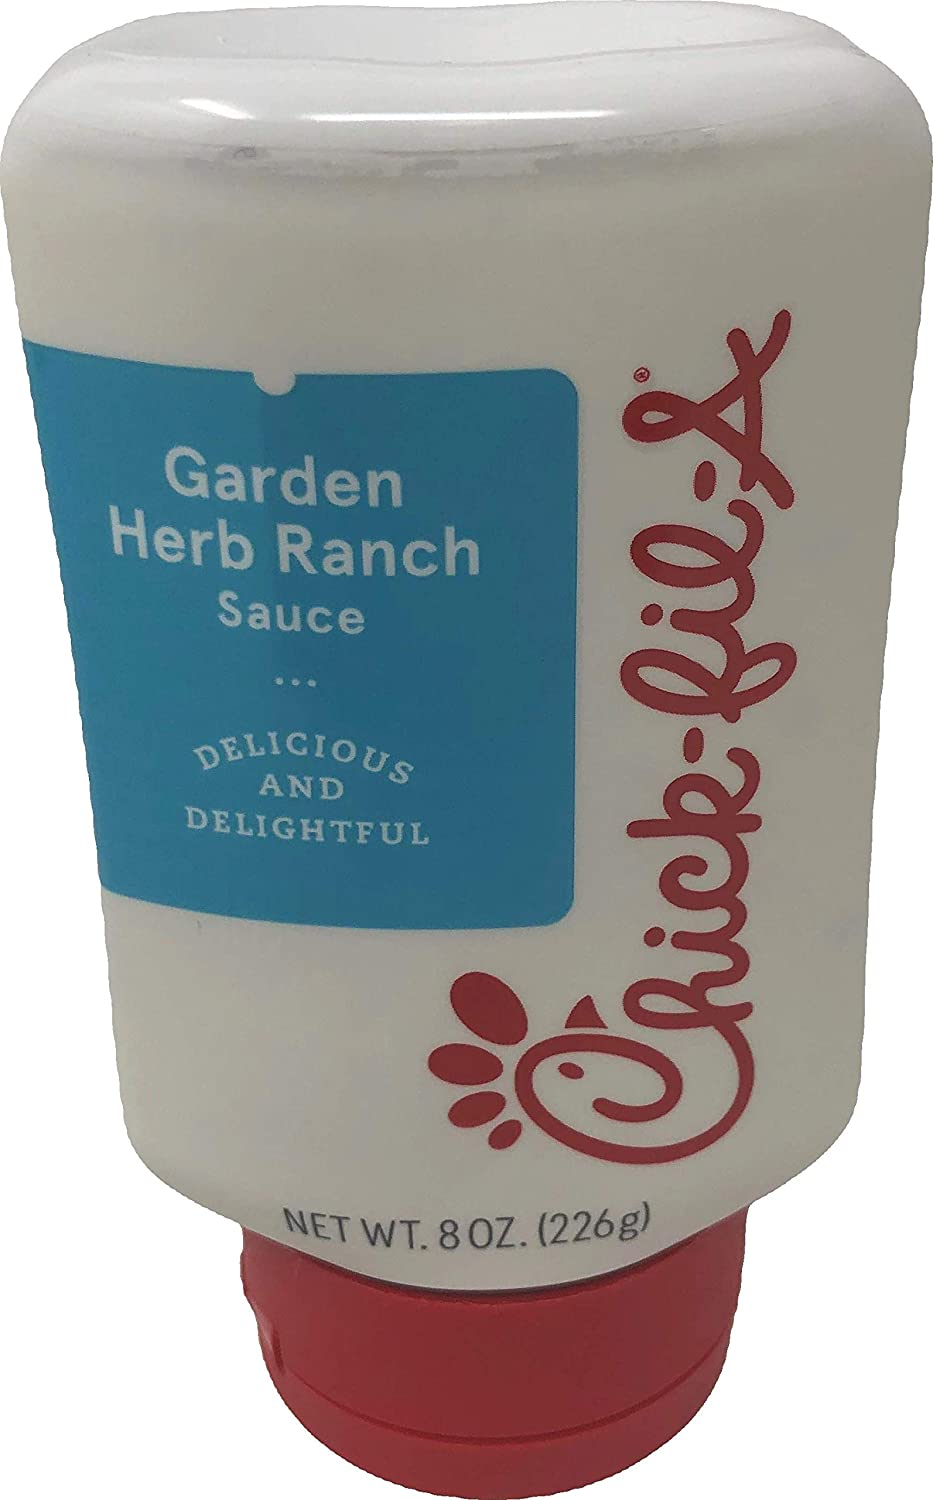 Chick-Fil-A Sauce 8 oz. Squeeze Bottle - Resealable Container For Dipping, Drizzling, and Marinades (Garlic Herb Ranch)